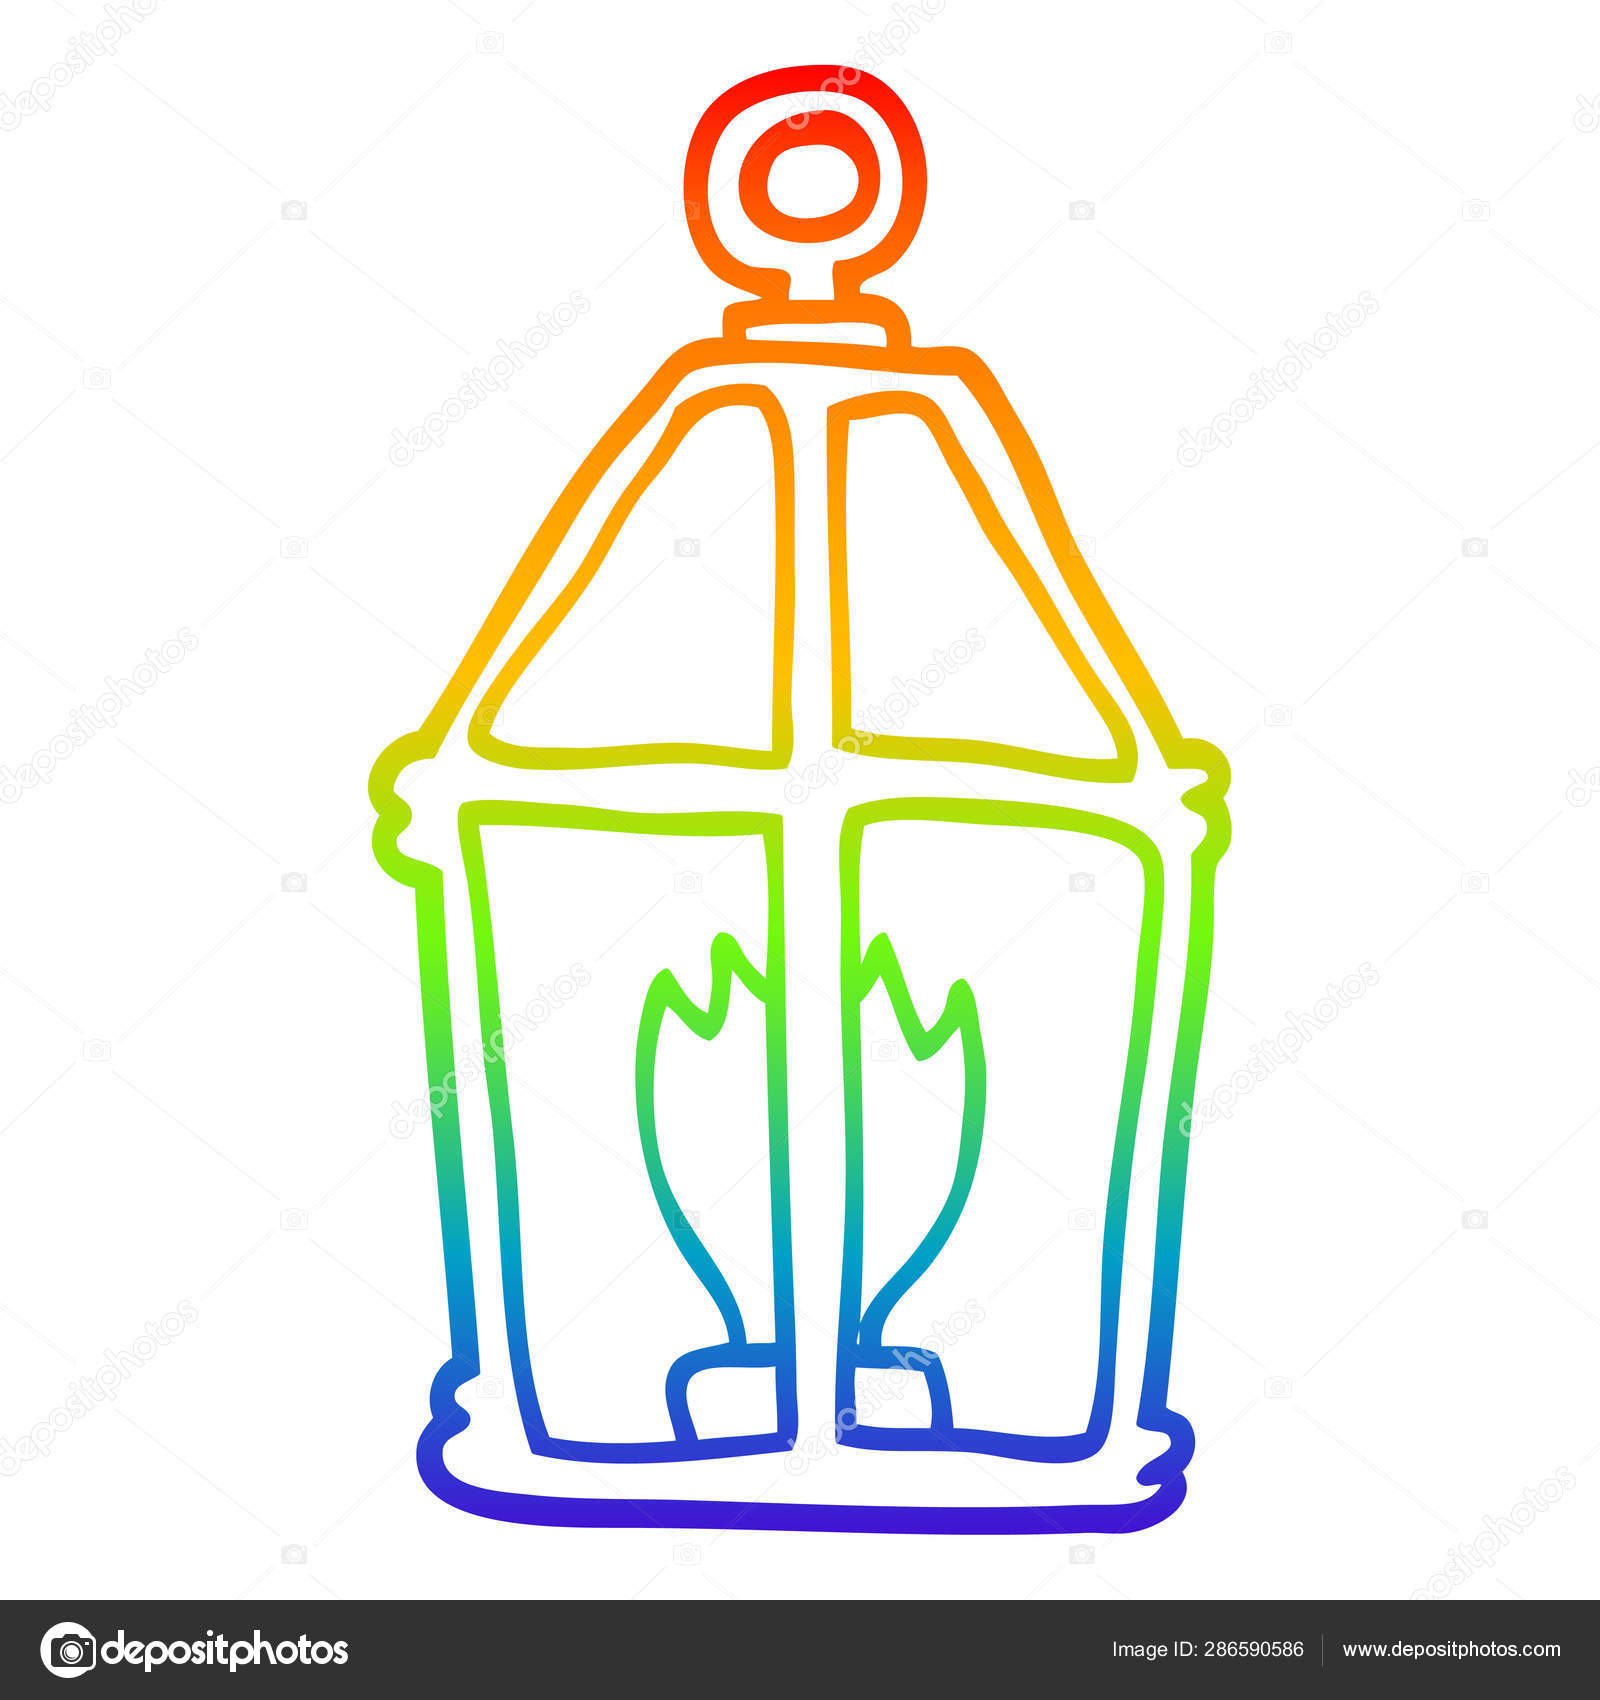 Rainbow Gradient Line Drawing Cartoon Old Lantern Stock Vector Lineartestpilot 286590586